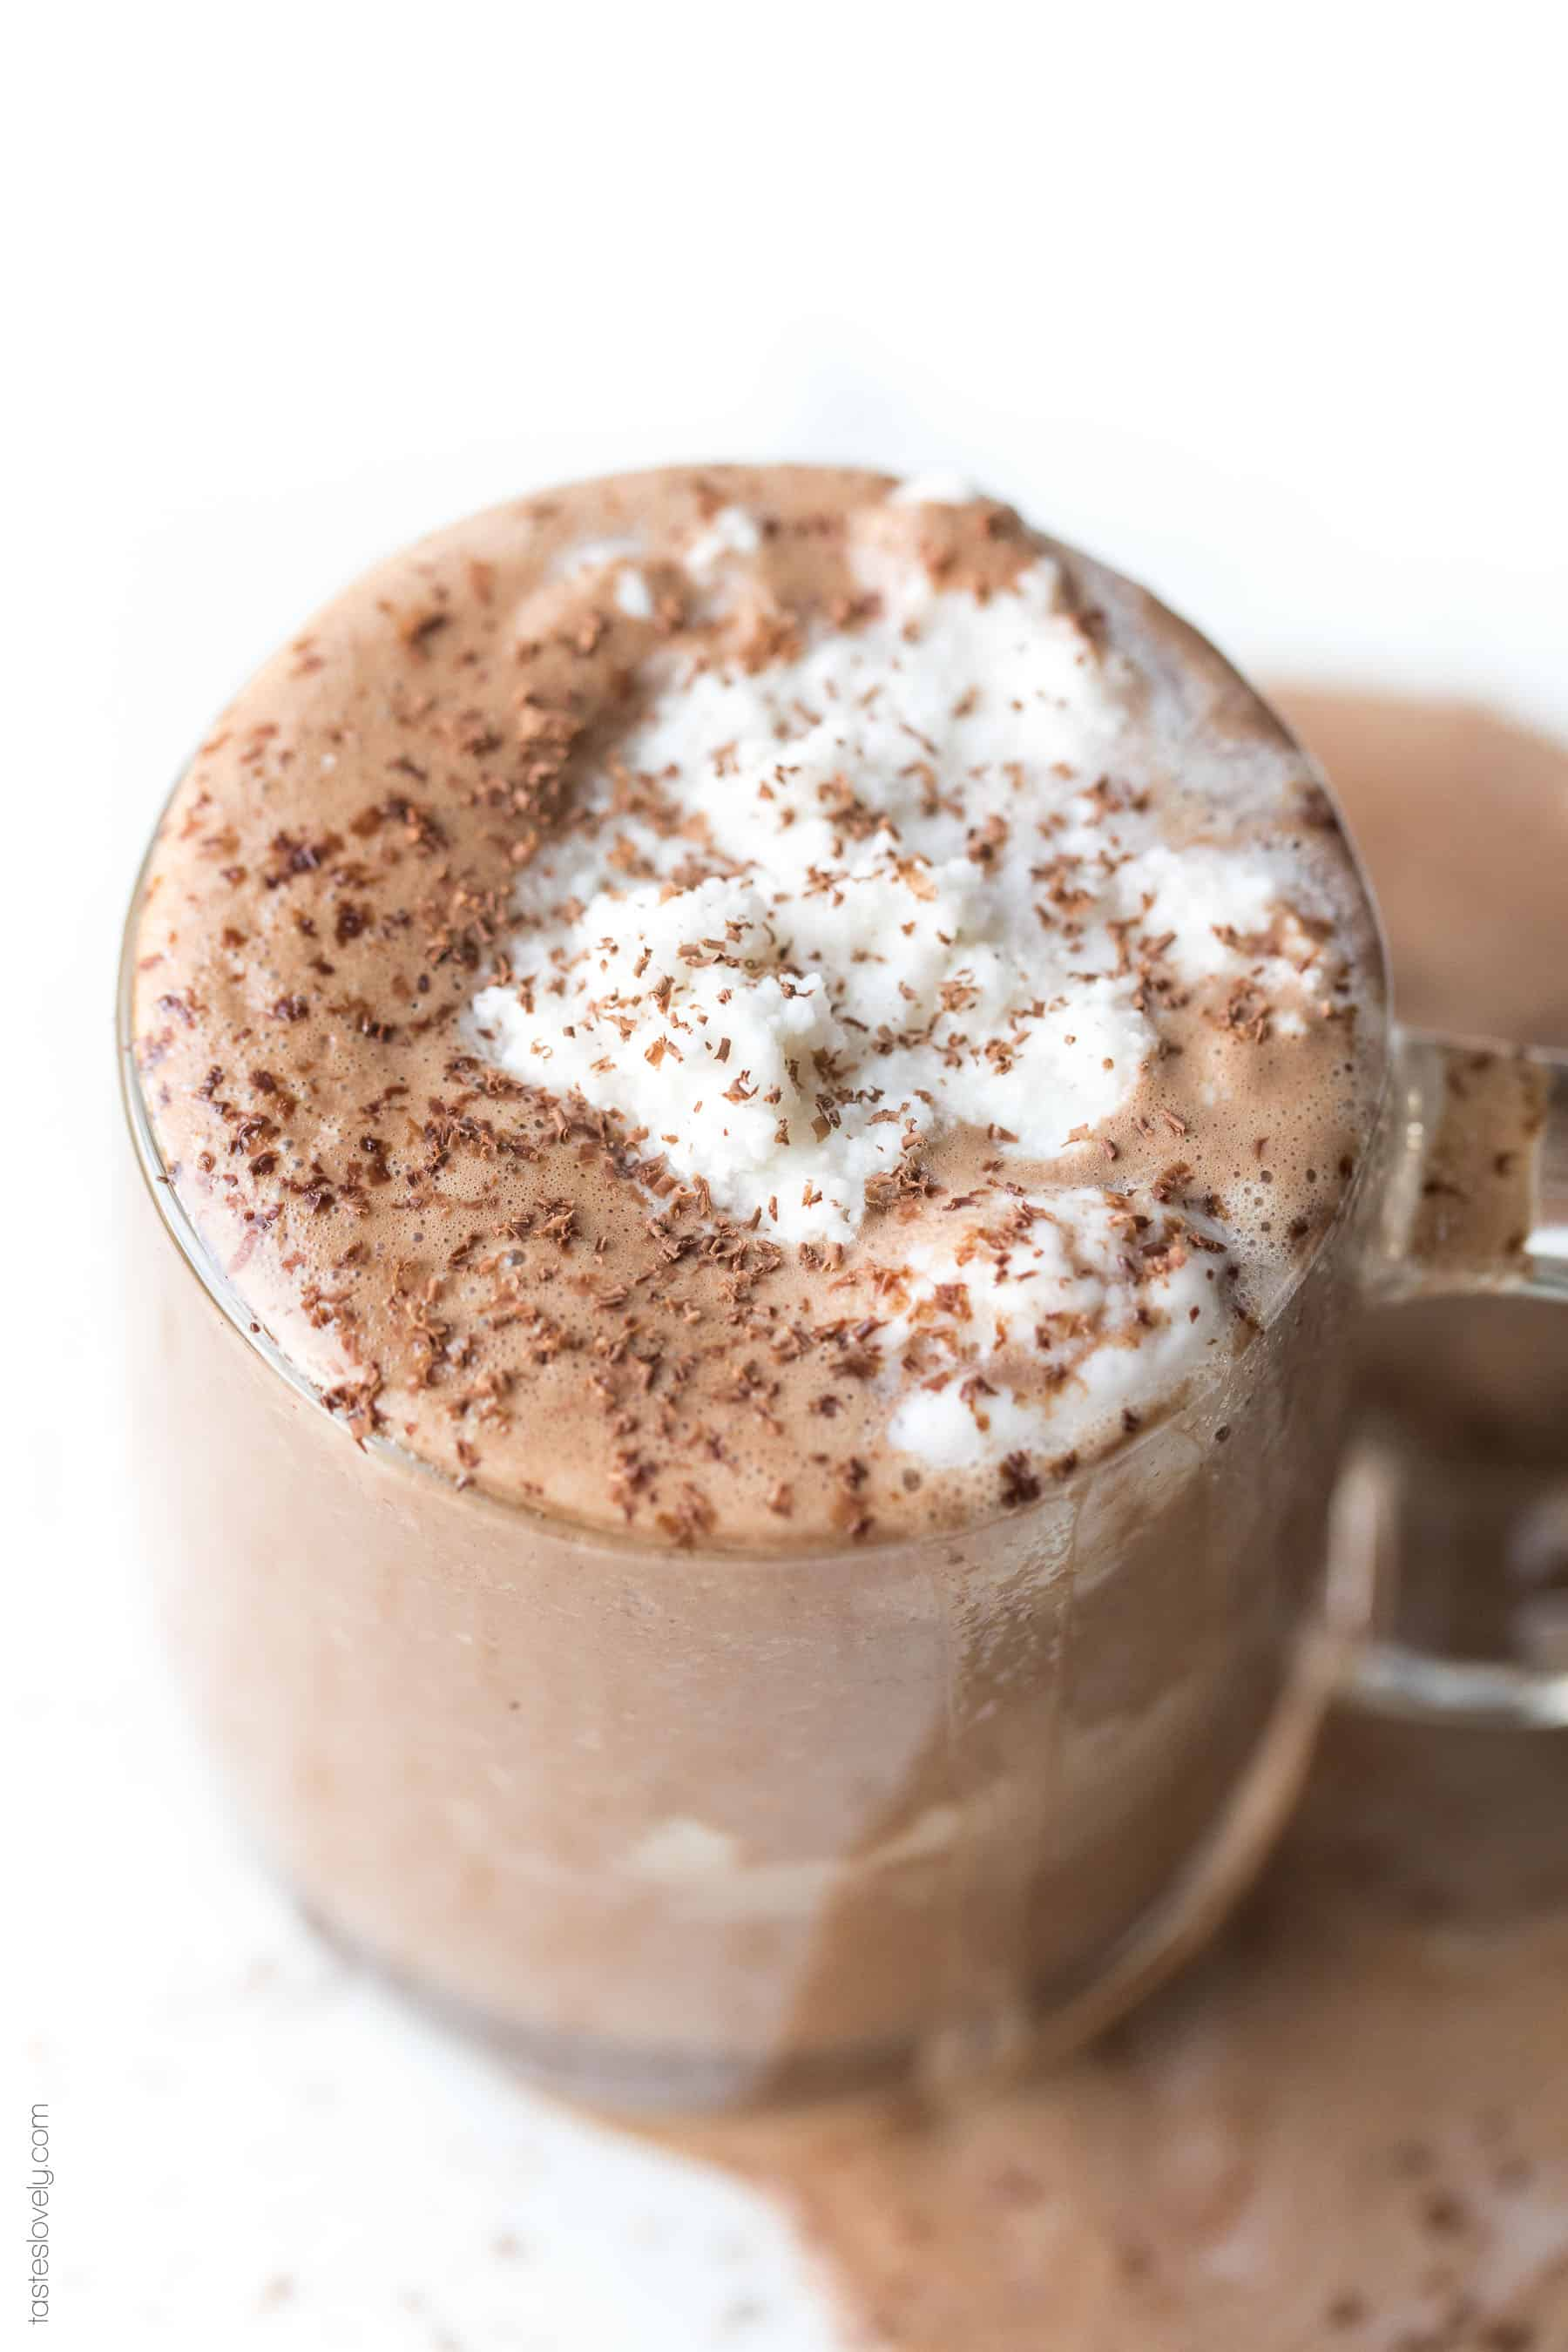 Hot chocolate in a clear mug topped with whipped cream and shaved chocolate